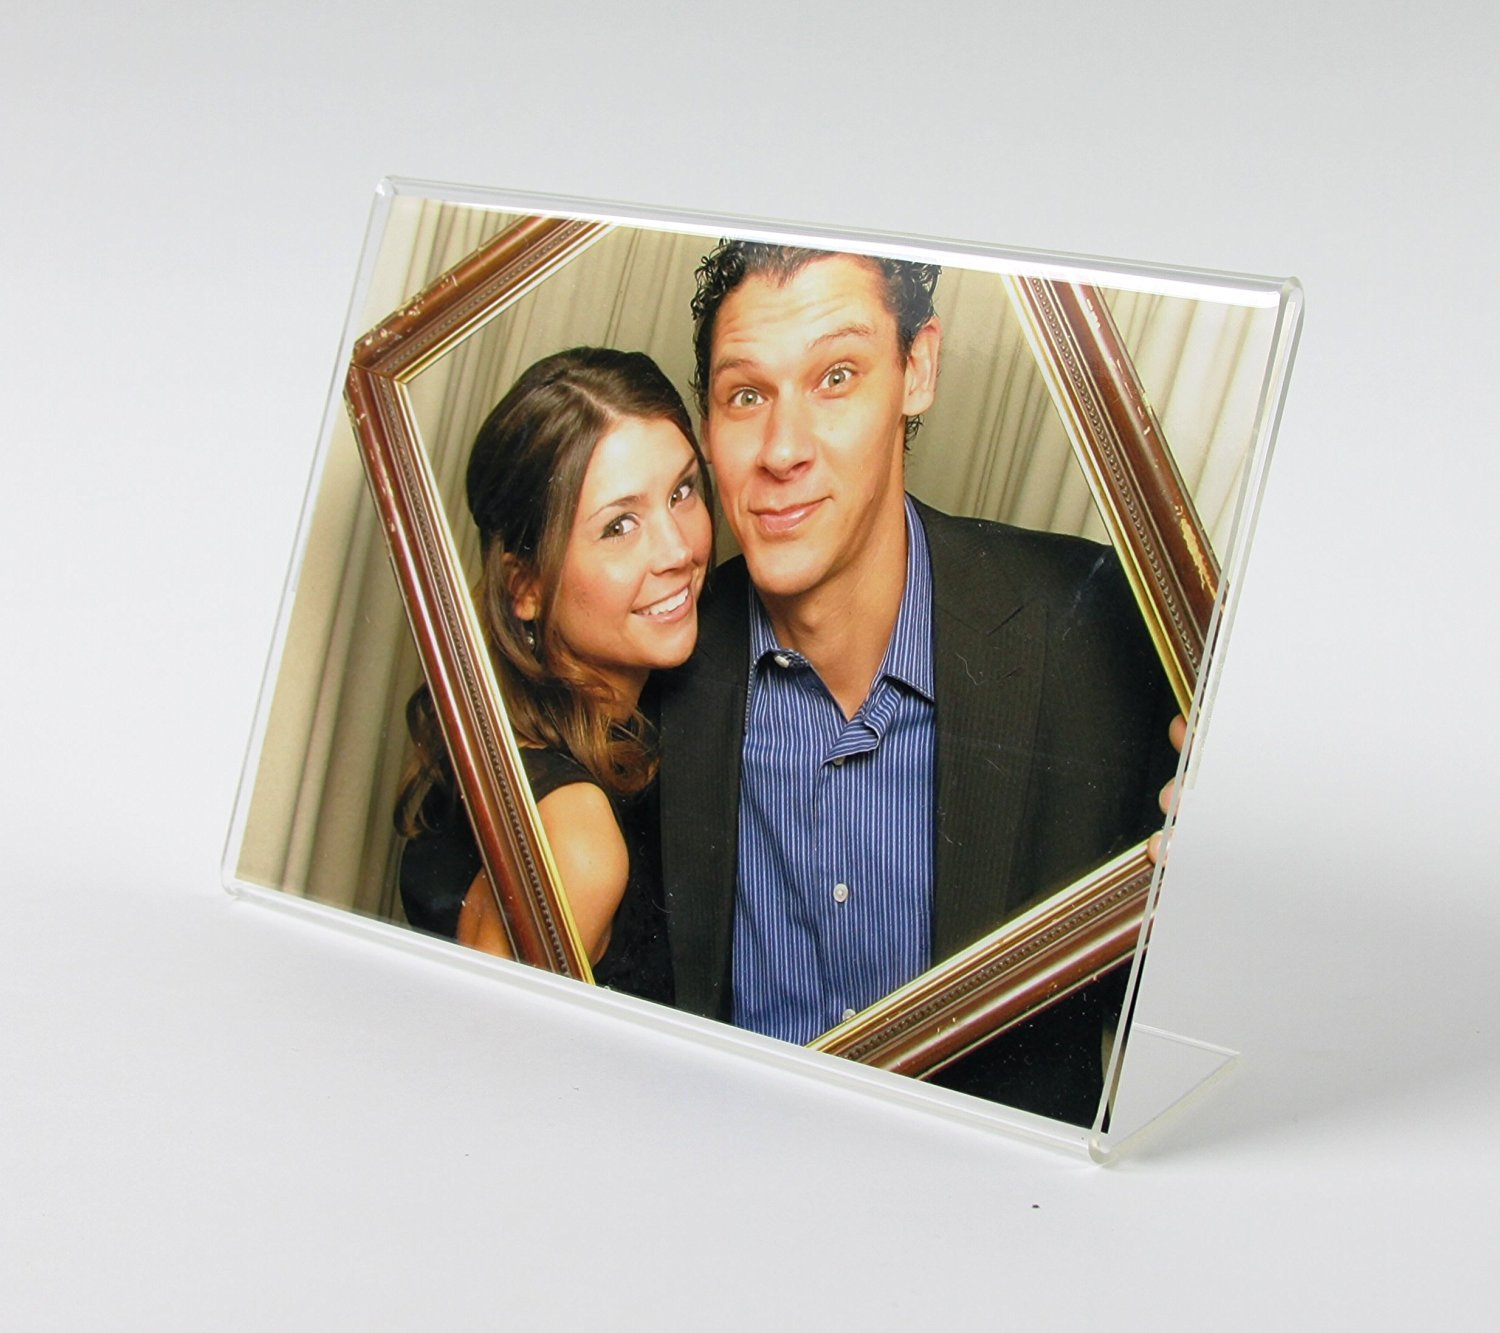 144 pack of 6''x4'' Acrylic Picture Frames, Sign Holders, Wholesale … by Photo Booth Nook